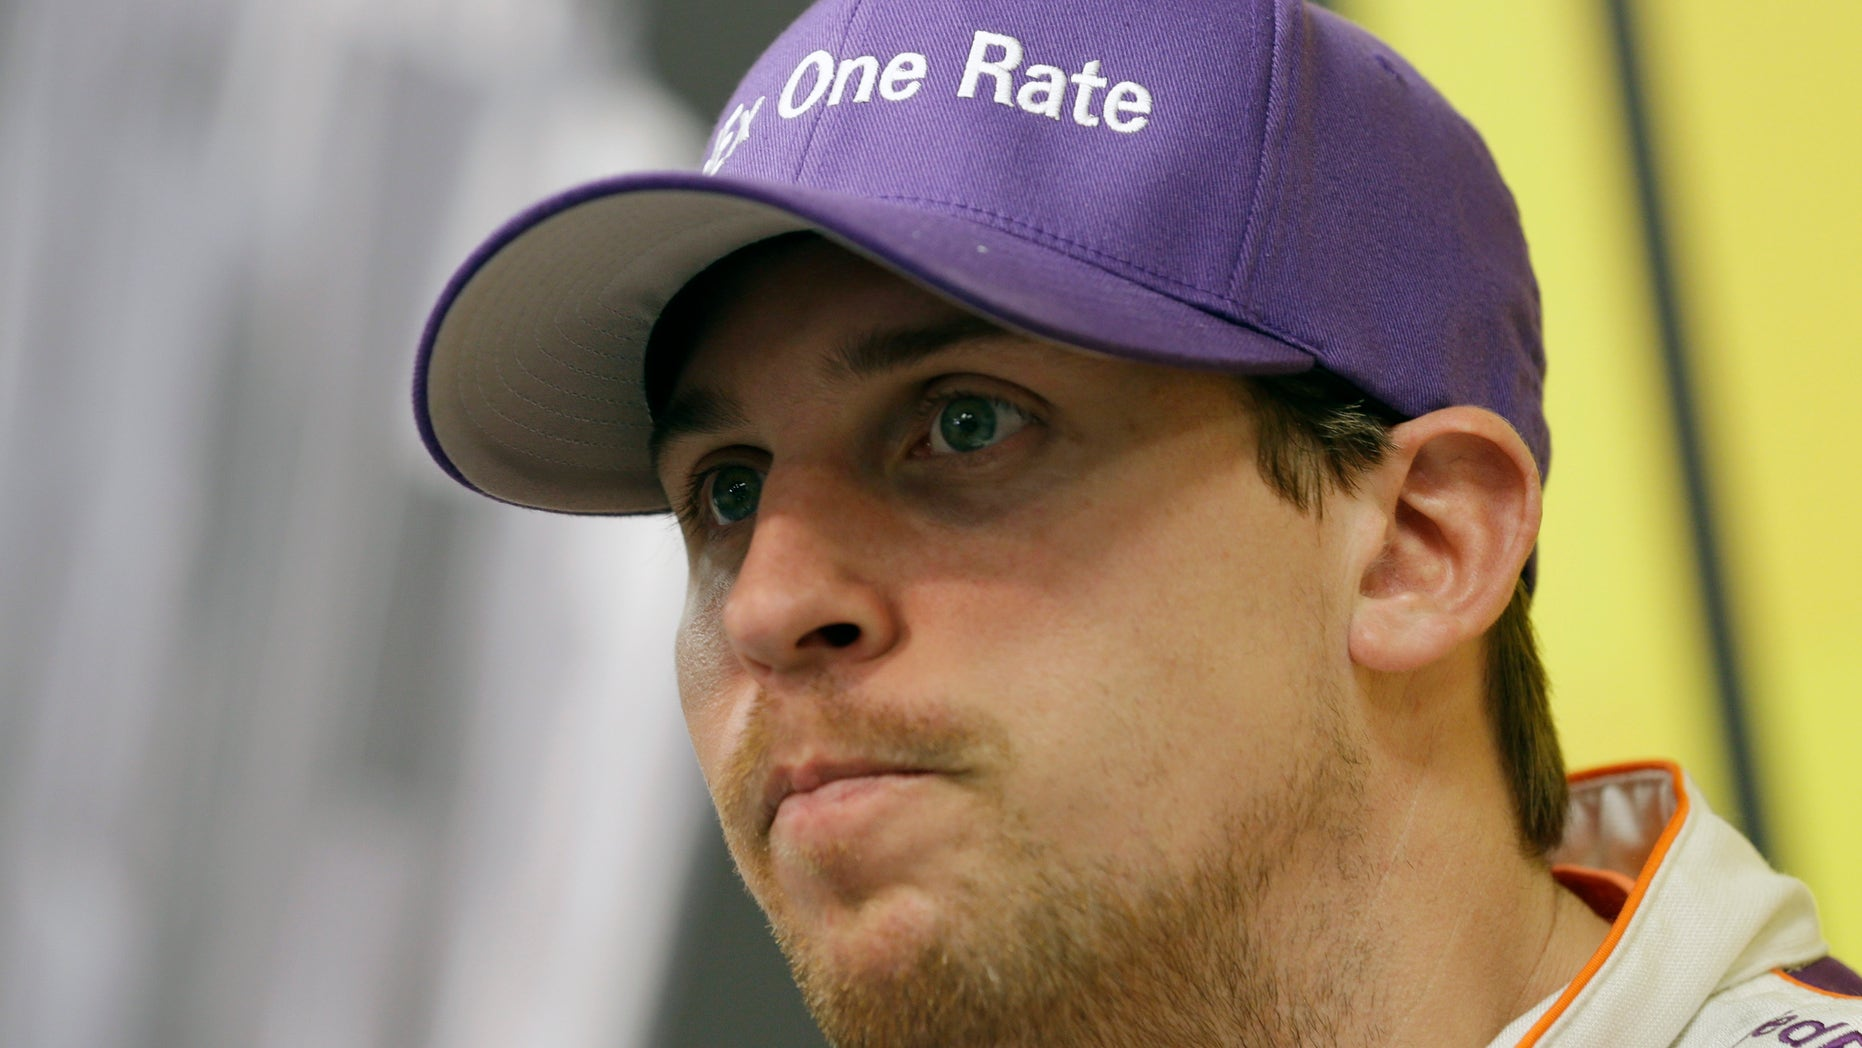 NASCAR Sprint Cup series driver Denny Hamlin talks to the media after practice for Sunday's auto race at the Martinsville Speedway in Martinsville, Va., Friday, Oct. 25, 2013. (AP Photo/Steve Helber)